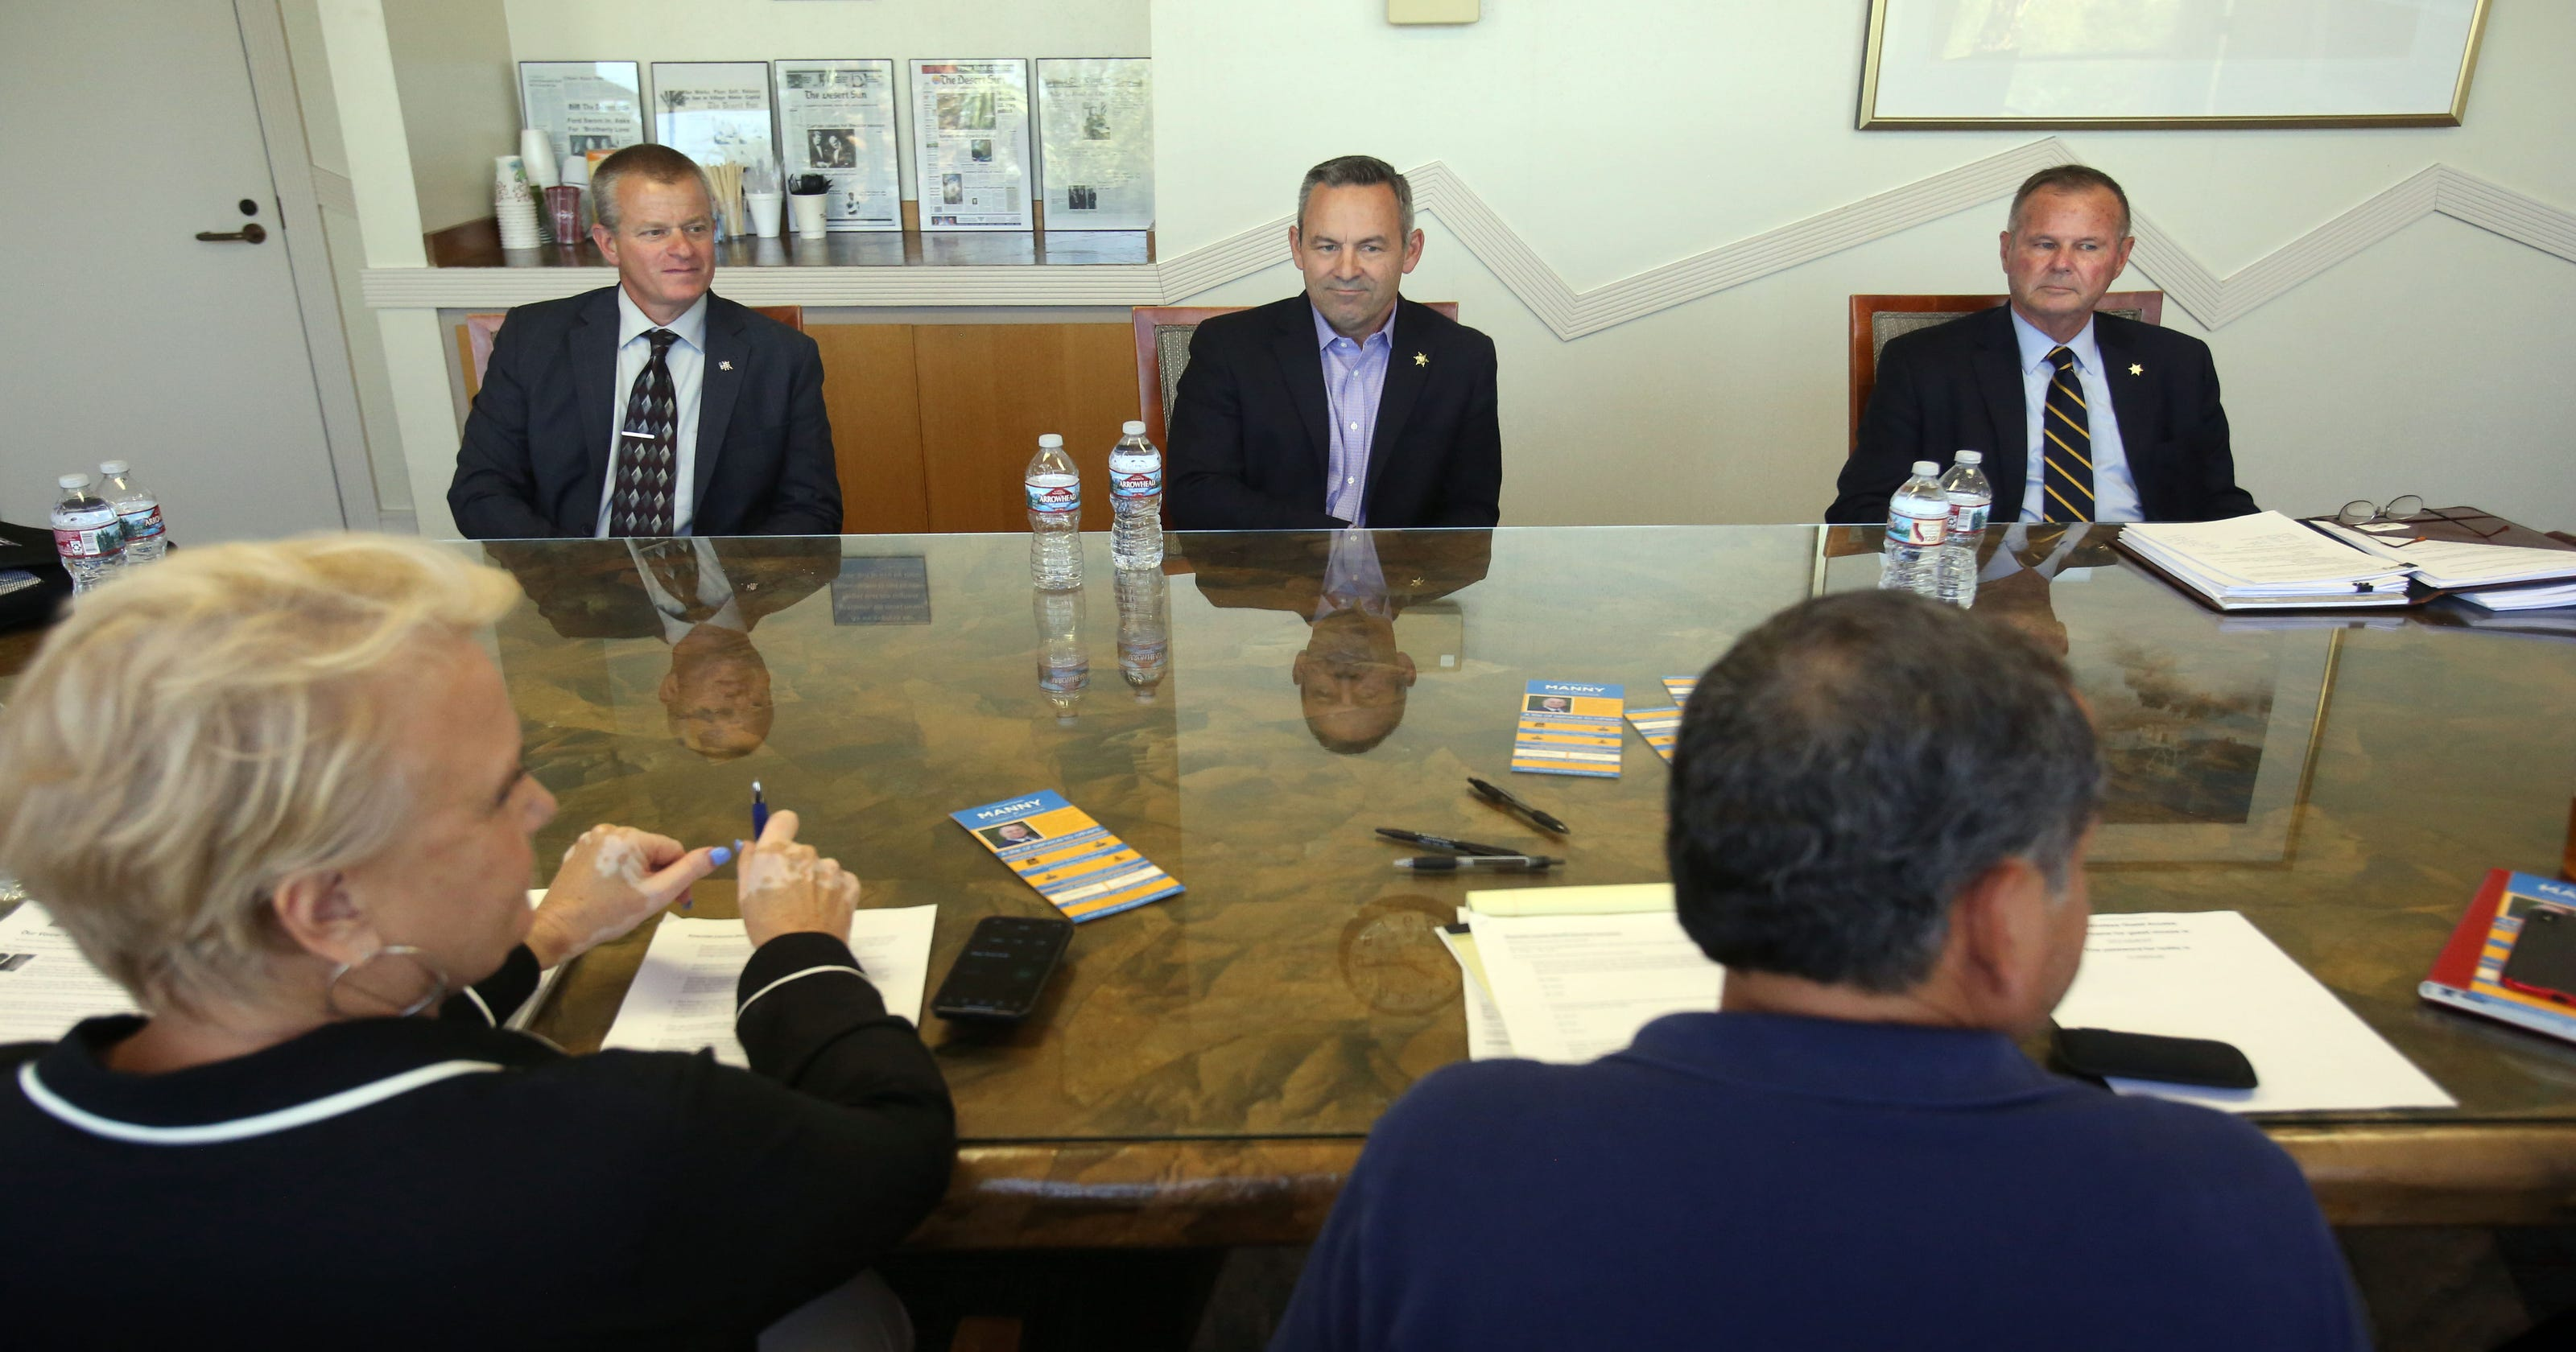 Riverside County Sheriff candidates respond to policy questions